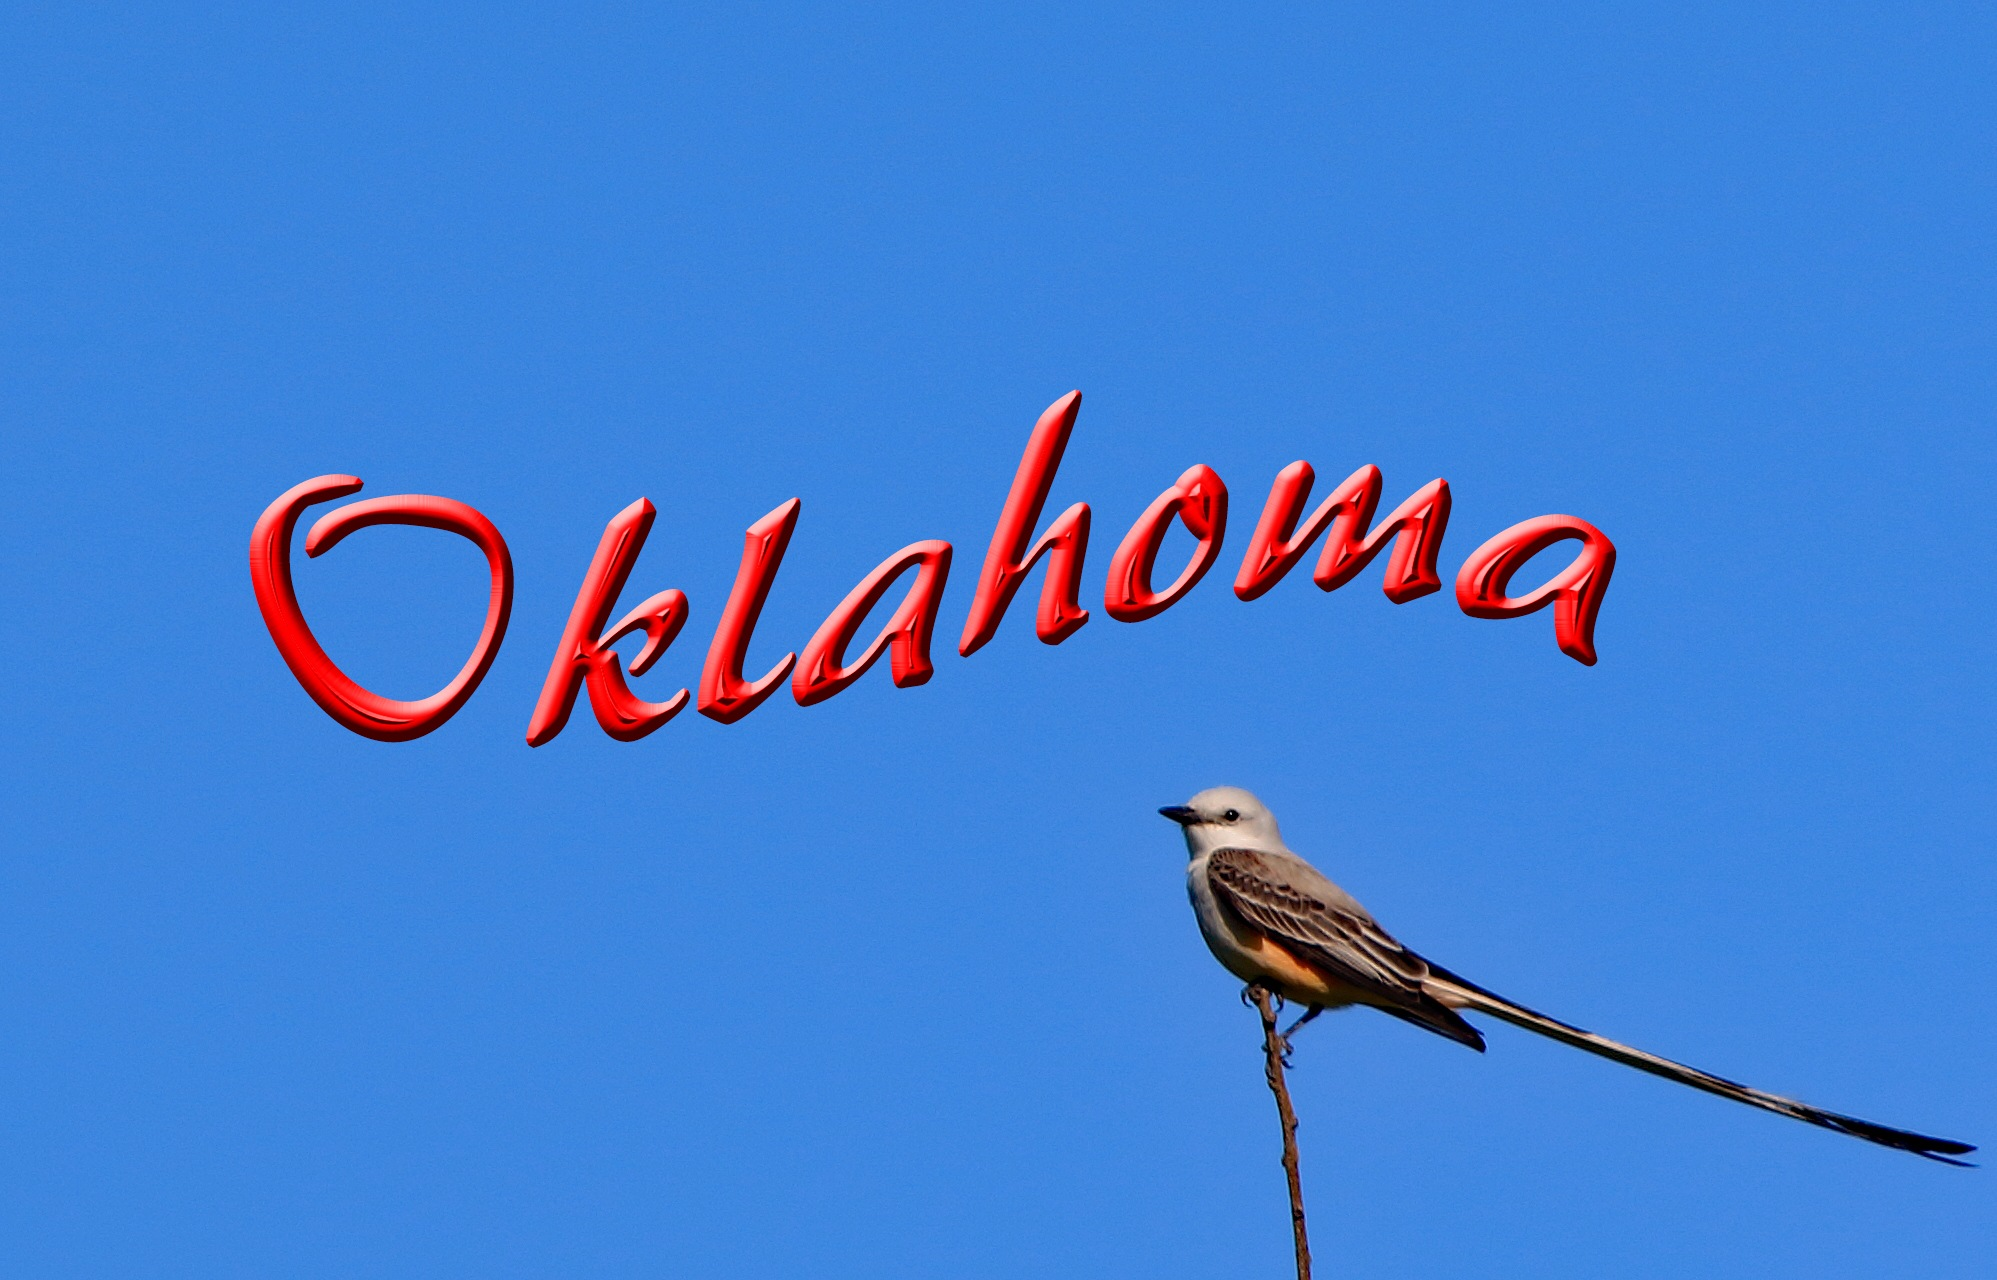 Oklahoma State Bird by David M.